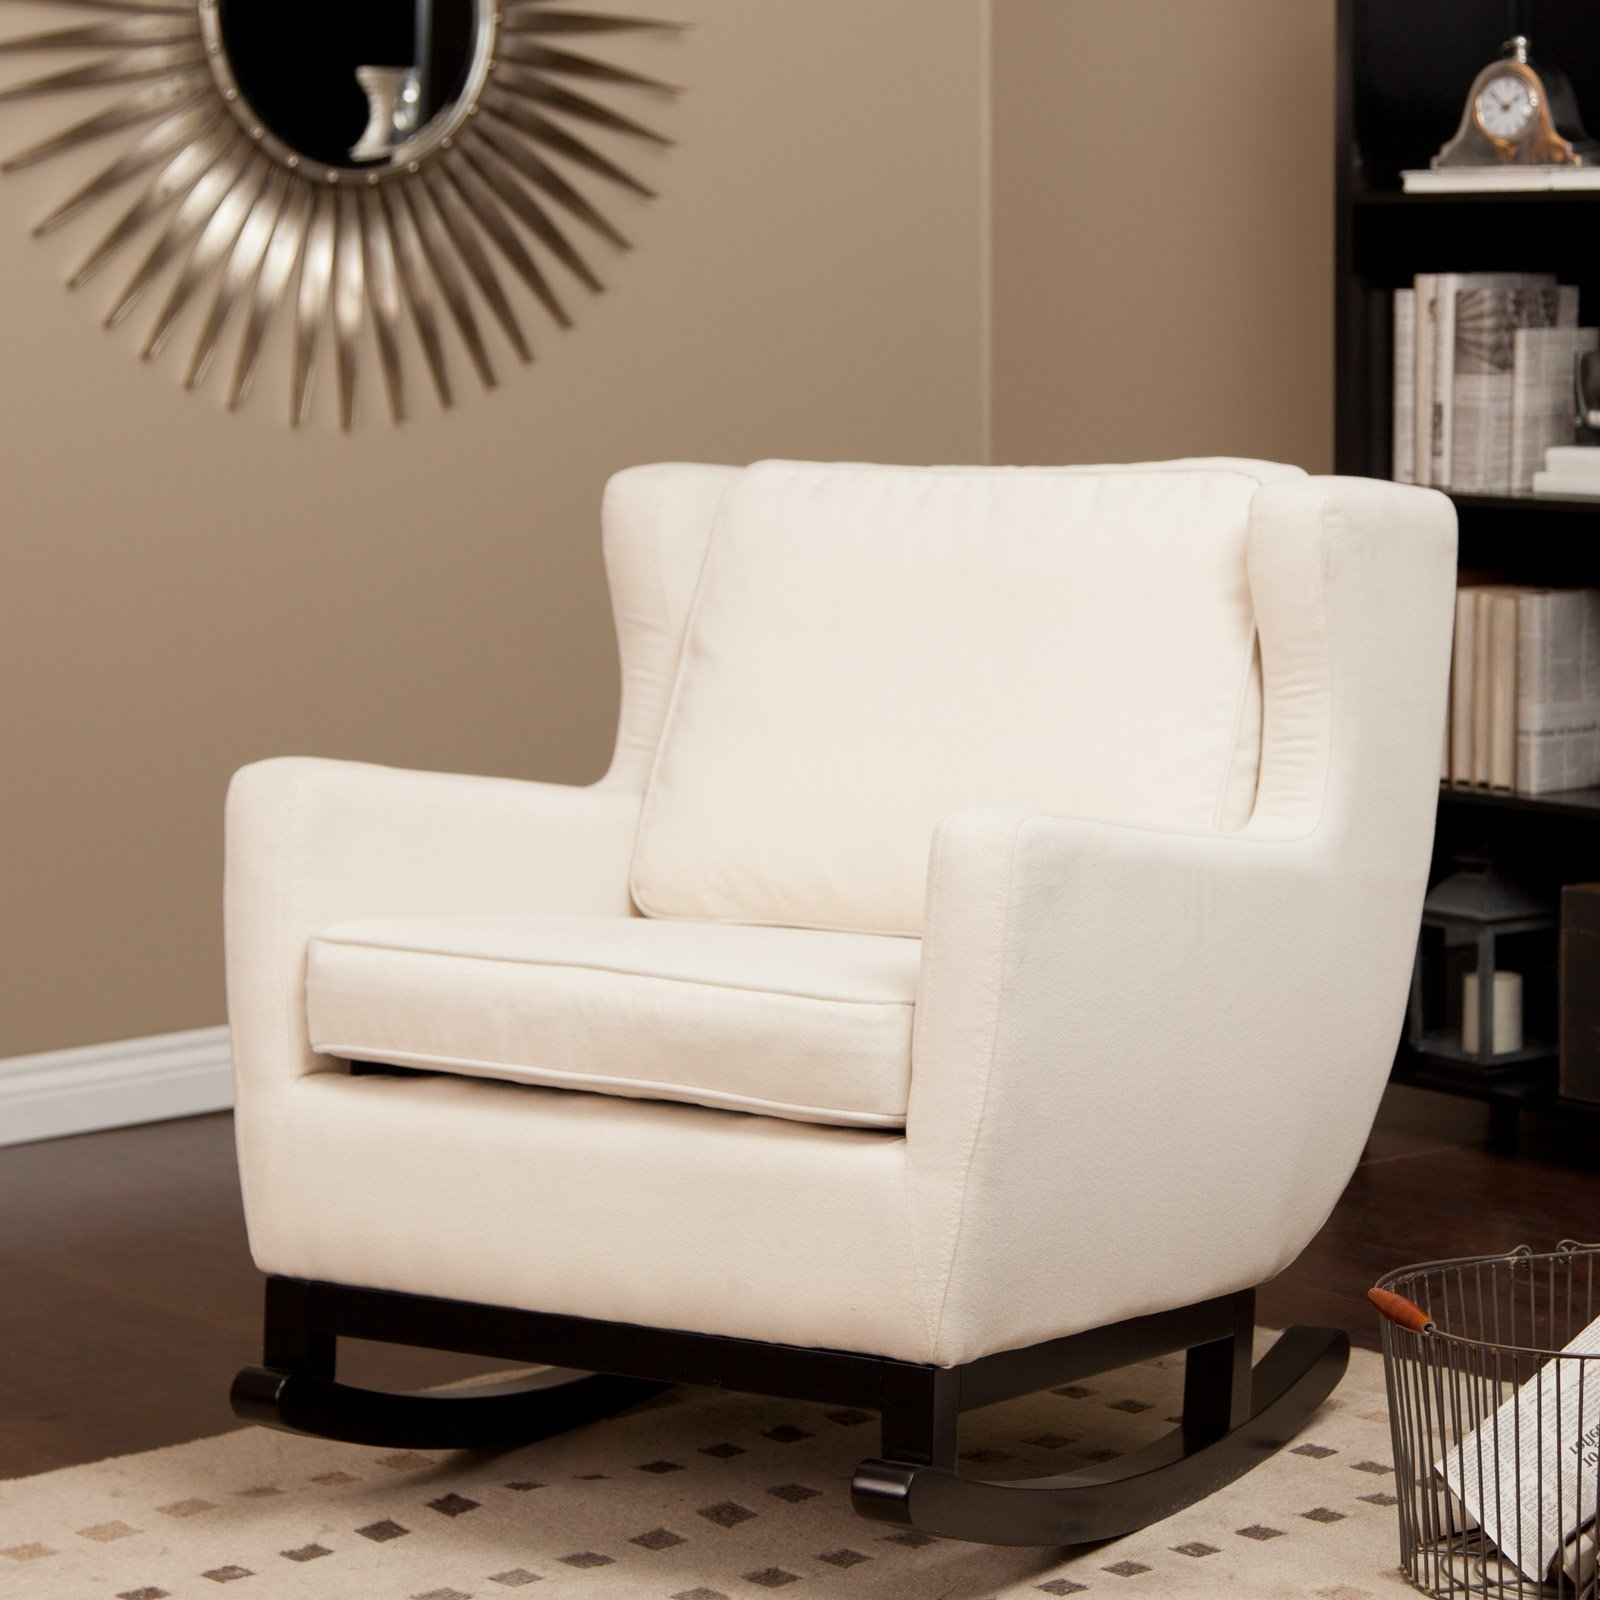 Fashionable Rocking Chairs For Living Room Regarding Livingroom : Winsome Rocking Chair At Modern Interior Chairs (View 4 of 15)